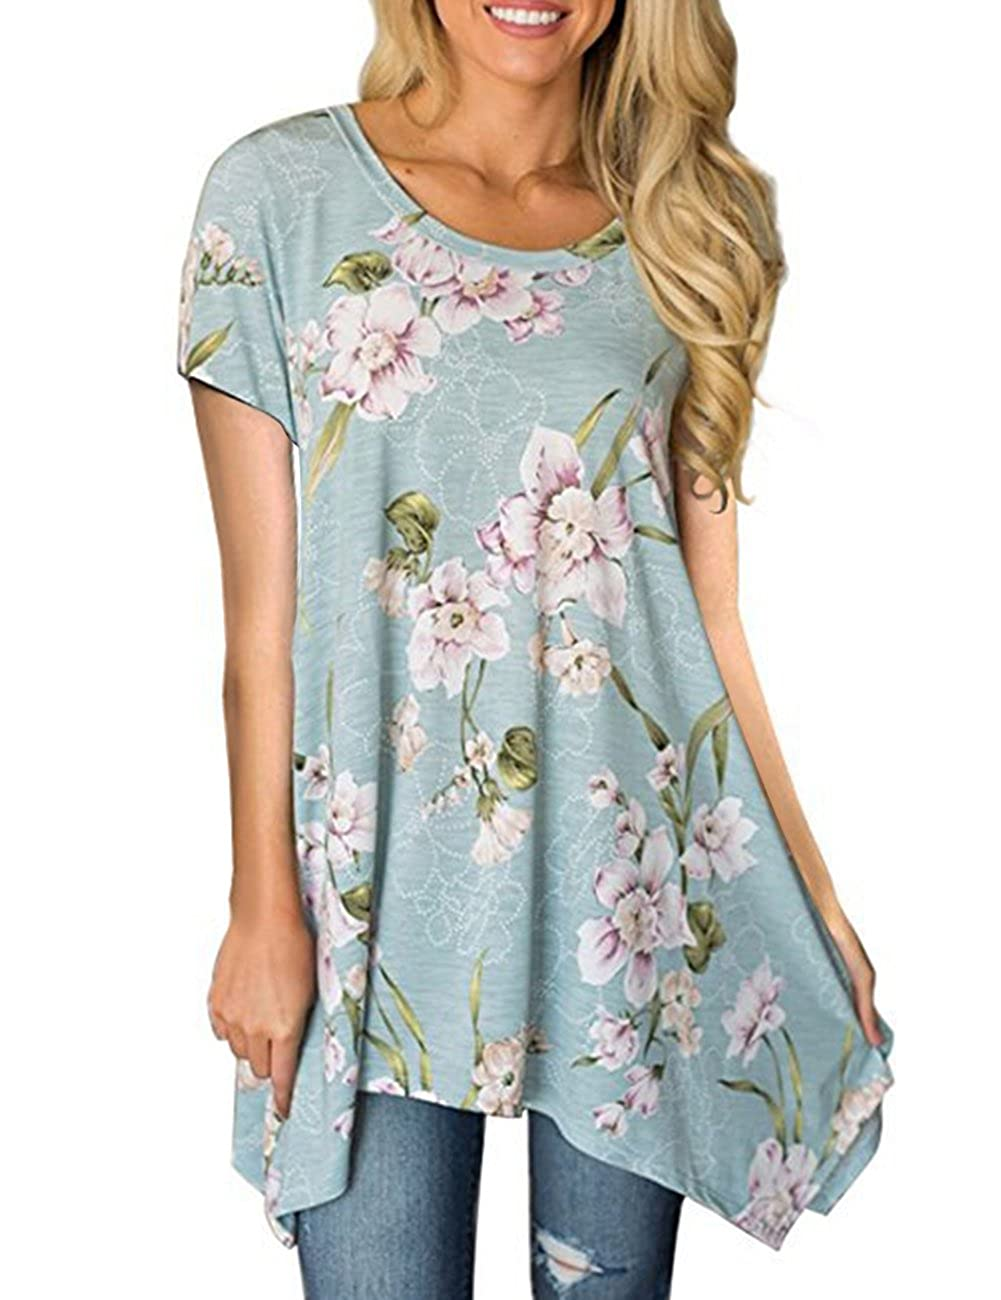 349afd48093 Stretchy material, soft and no see through, very light and airy,  comfortable to wear. Pull On closure. Casual Tunic Tops: Women Summer Floral  Short Sleeve ...